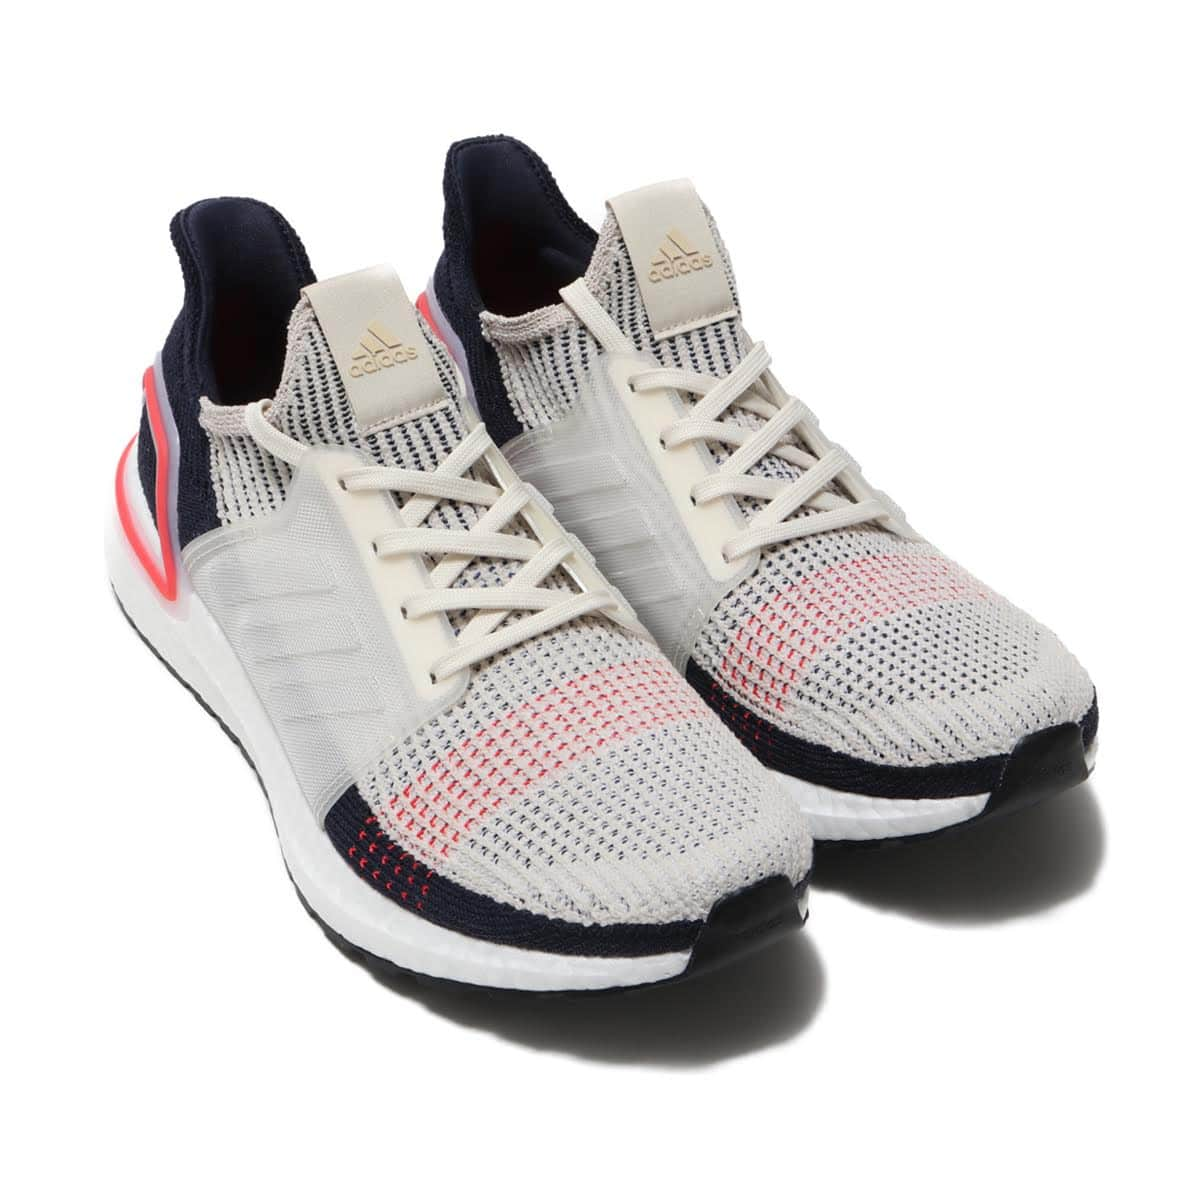 adidas UltraBOOST 19 CLEAR BROWN/CHALK WHITE/RUNNING WHITE 19SS-I_photo_large